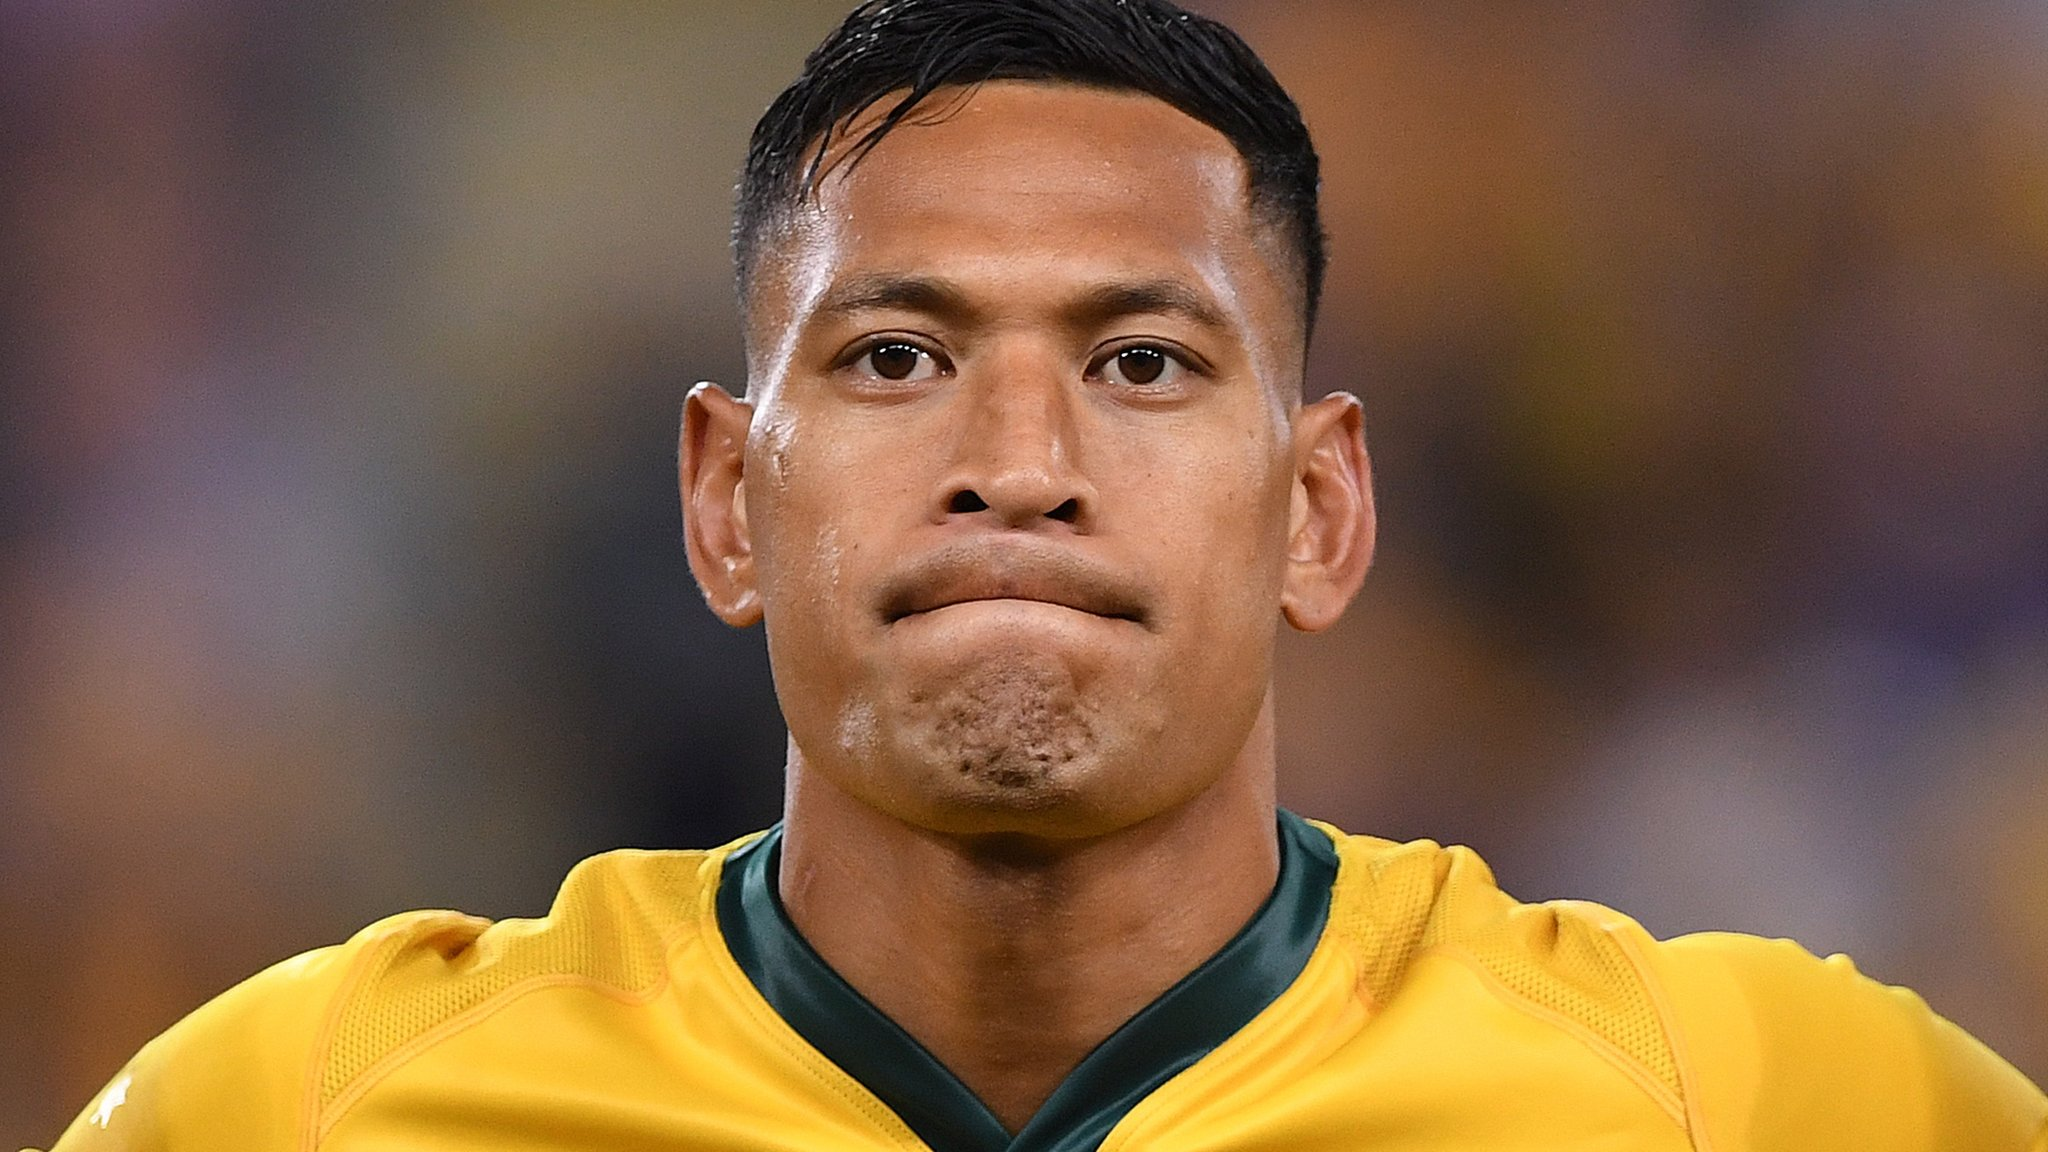 Israel Folau: Australia players' union to hold religious expression review